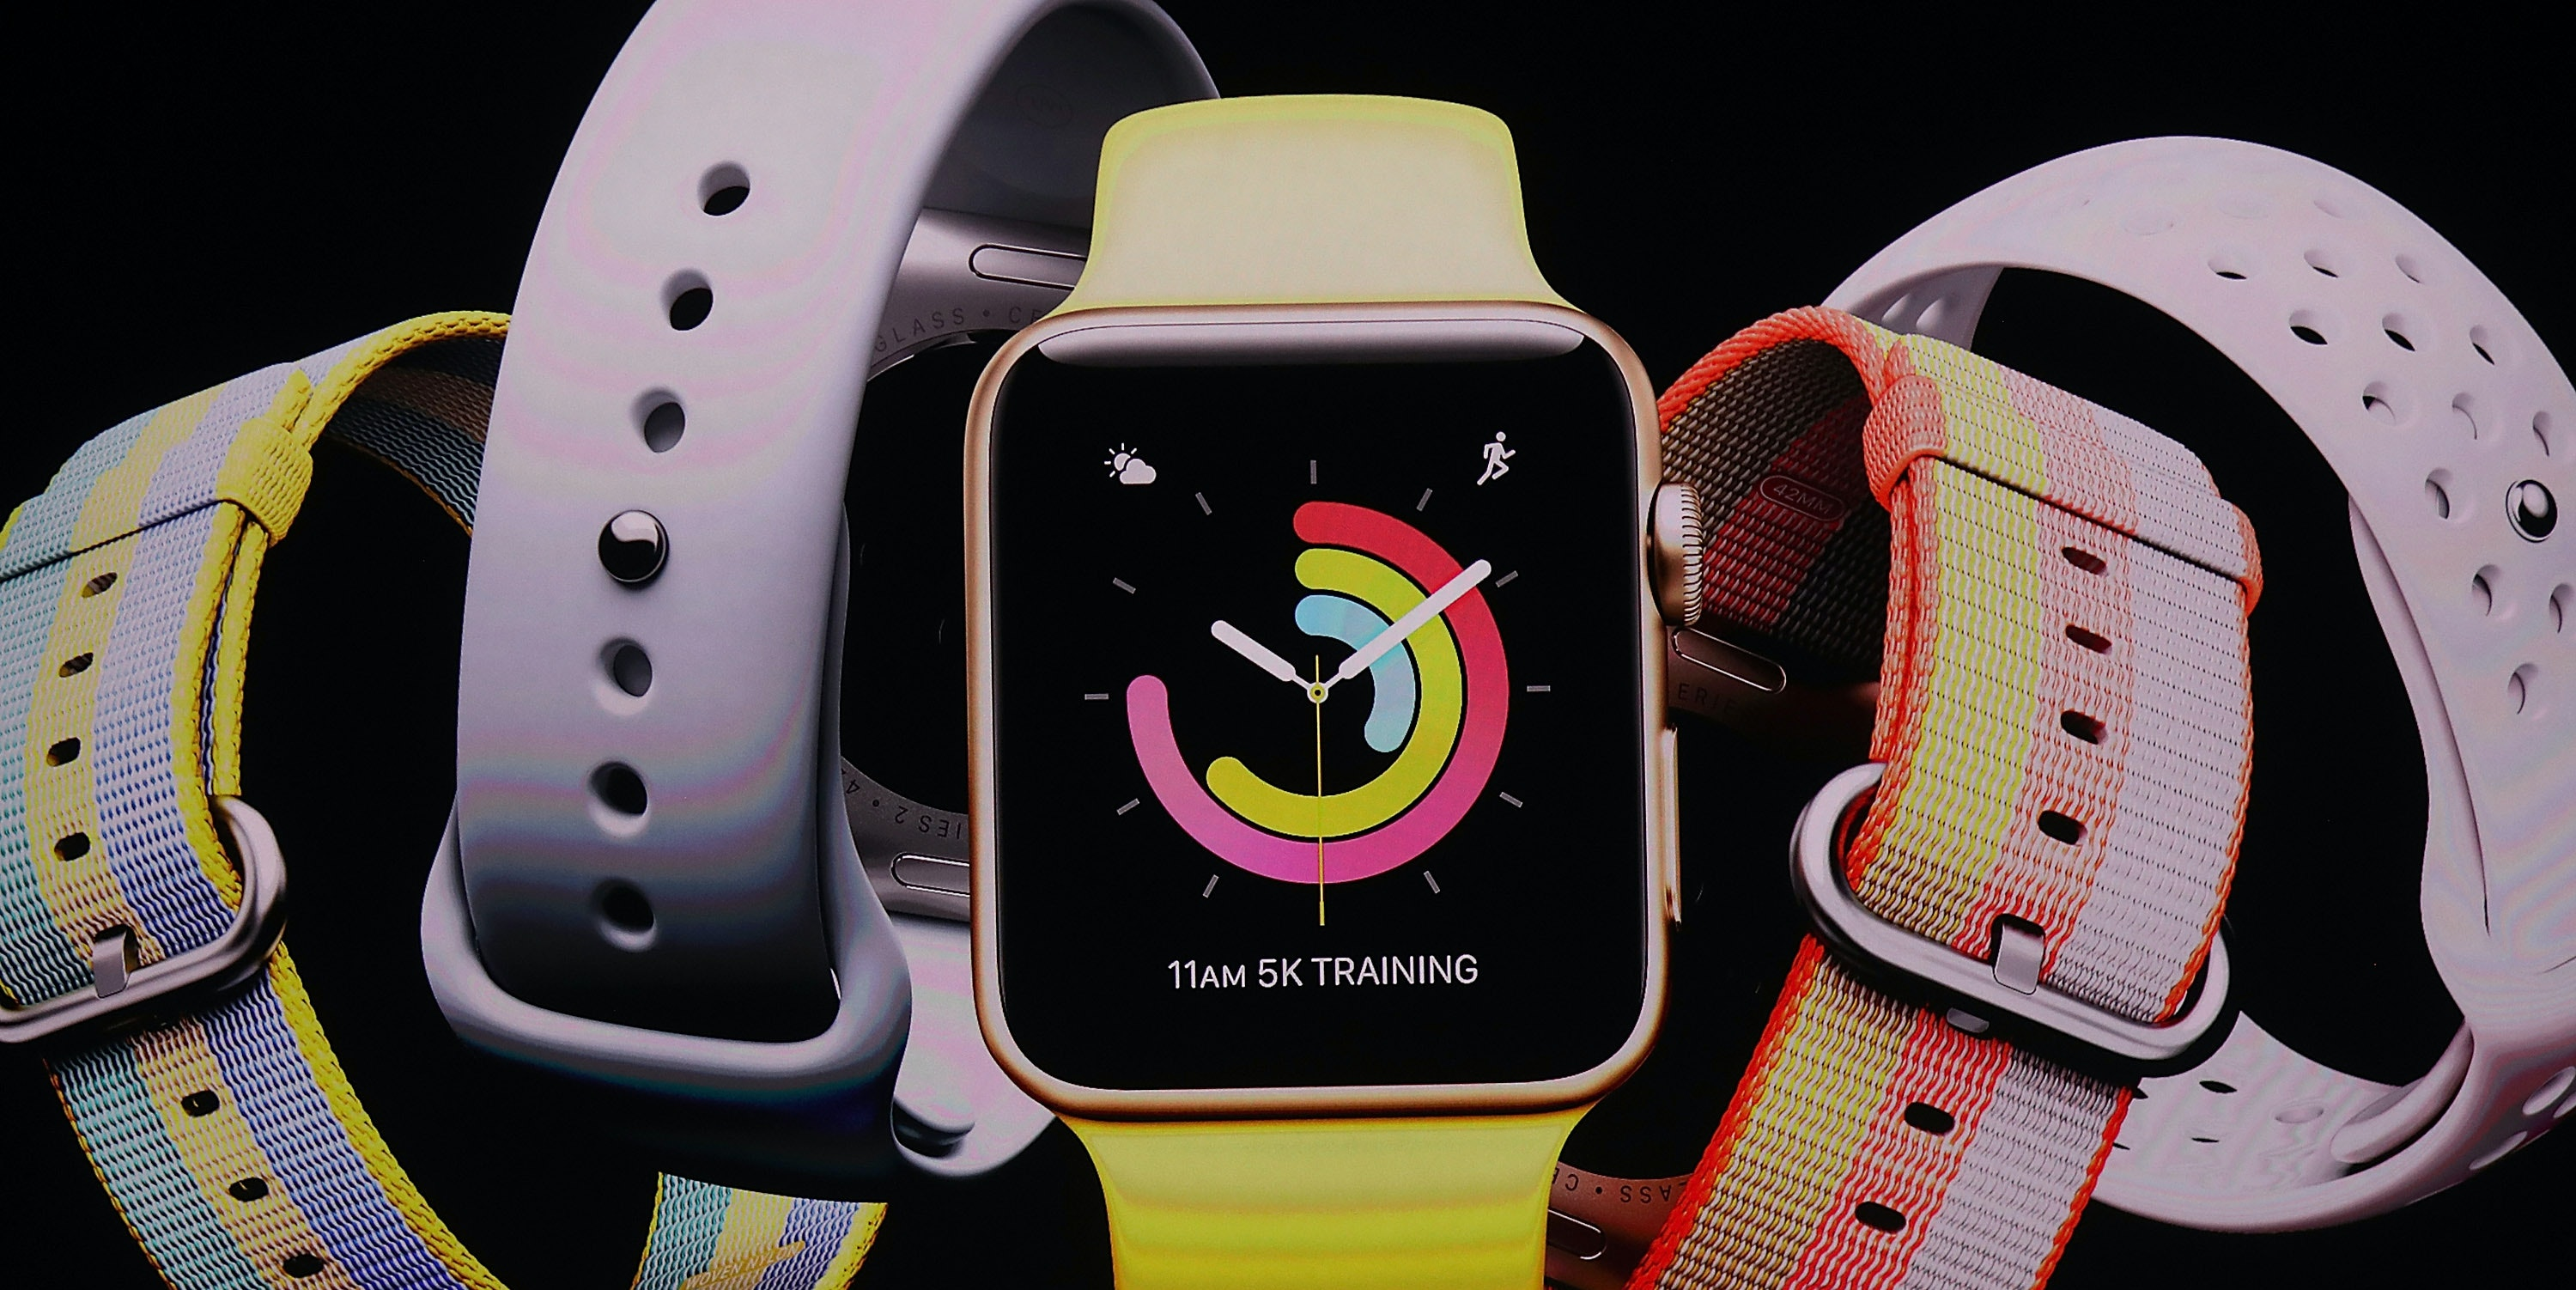 Apple Watch Relieves Cancer Patients of a Major Burden, Study Finds